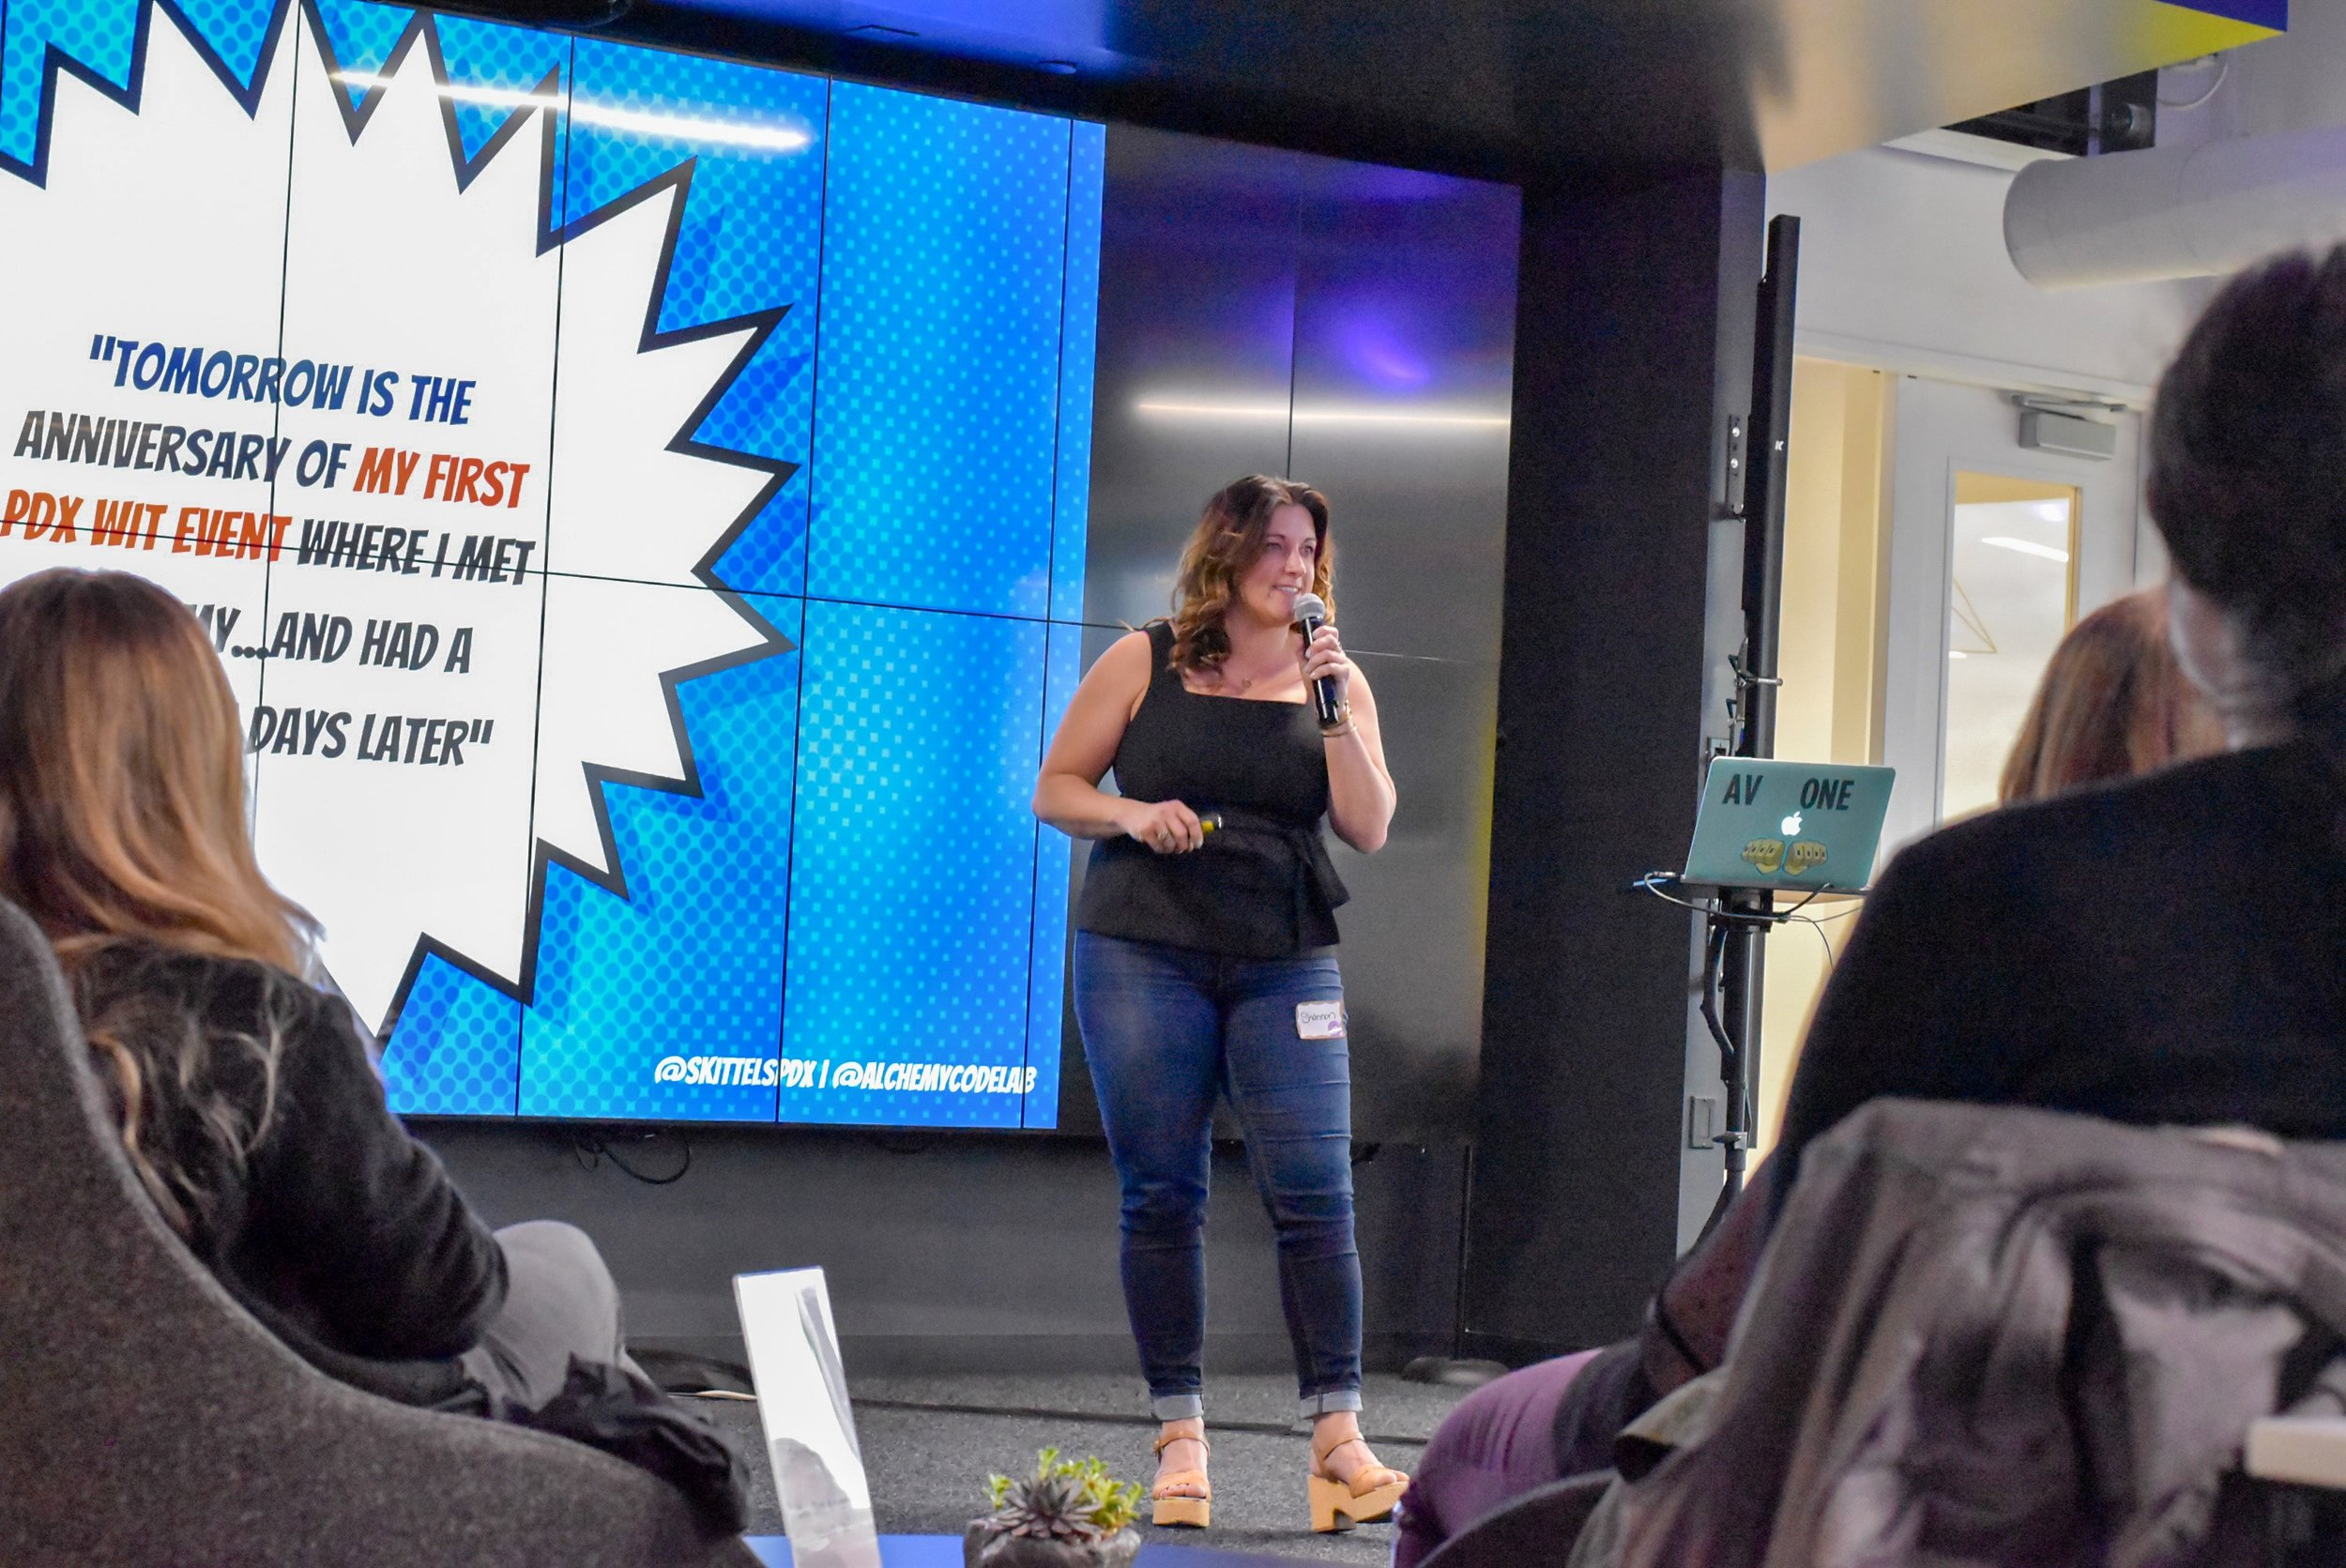 PDXWIT April Happy Hour @ New Relic, 4/16/19, Shannon Wolcott - Marketing and Career Services Director at Alchemy Code Lab - speaks